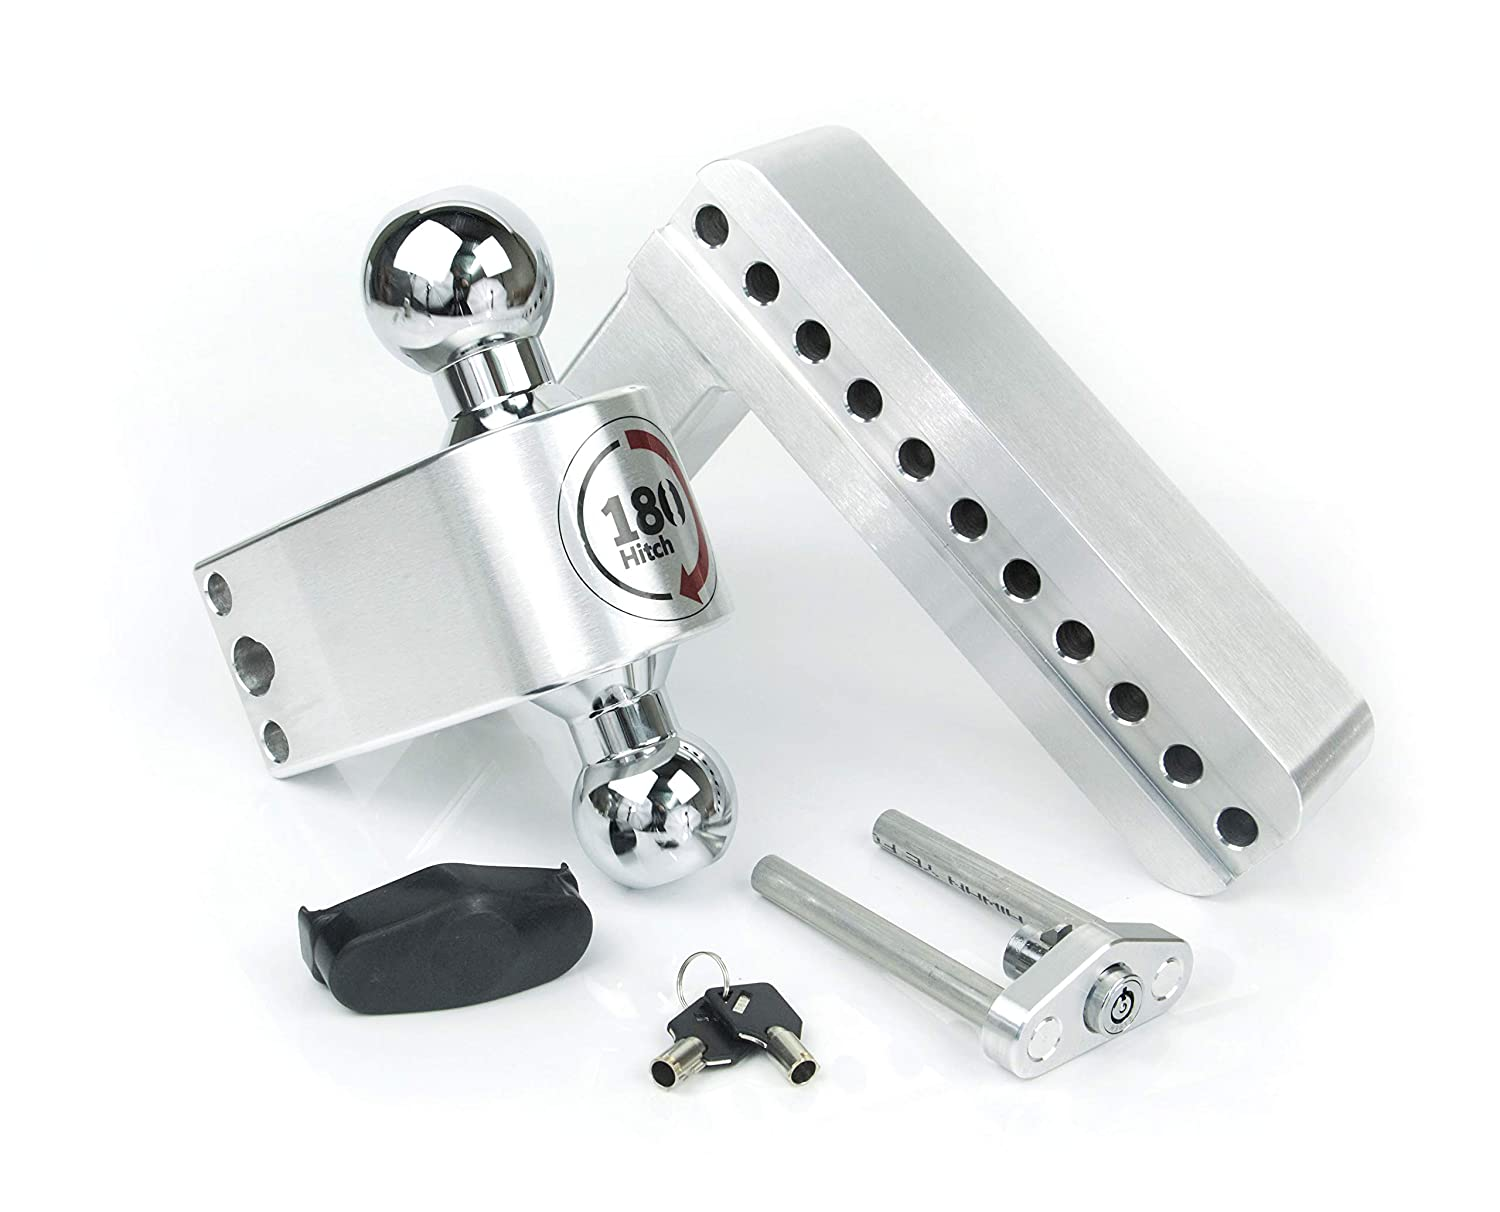 Weigh Safe CTB10-2 2 /& 2-5//16 and a Double-pin Key Lock Chrome Plated Steel Combo Ball Adjustable Aluminum Trailer Hitch /& Ball Mount 10 Drop 180 Hitch w// 2 Shank//Shaft